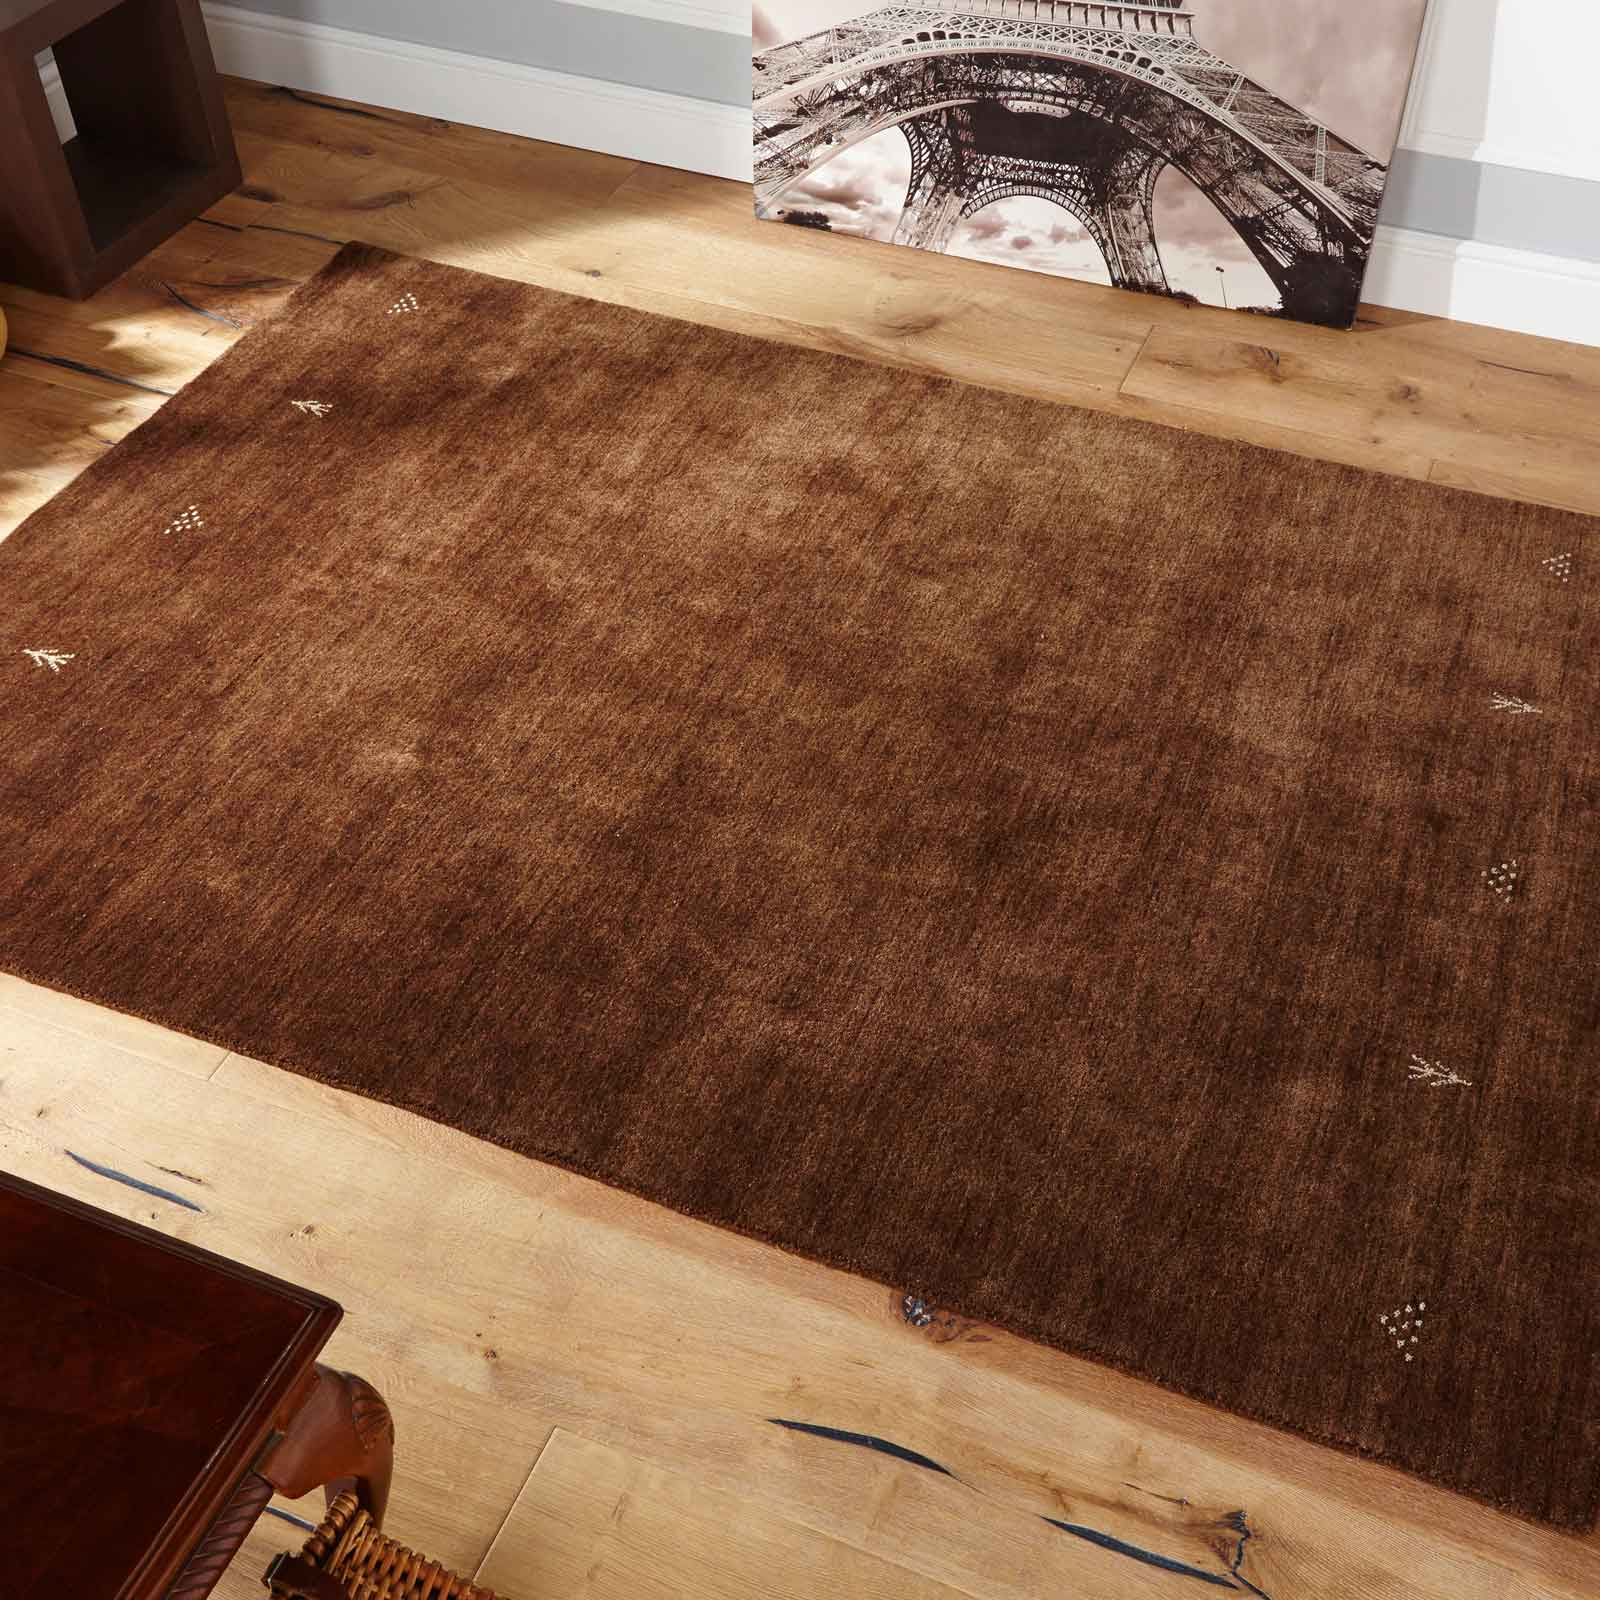 Loriana Rugs in Chocolate